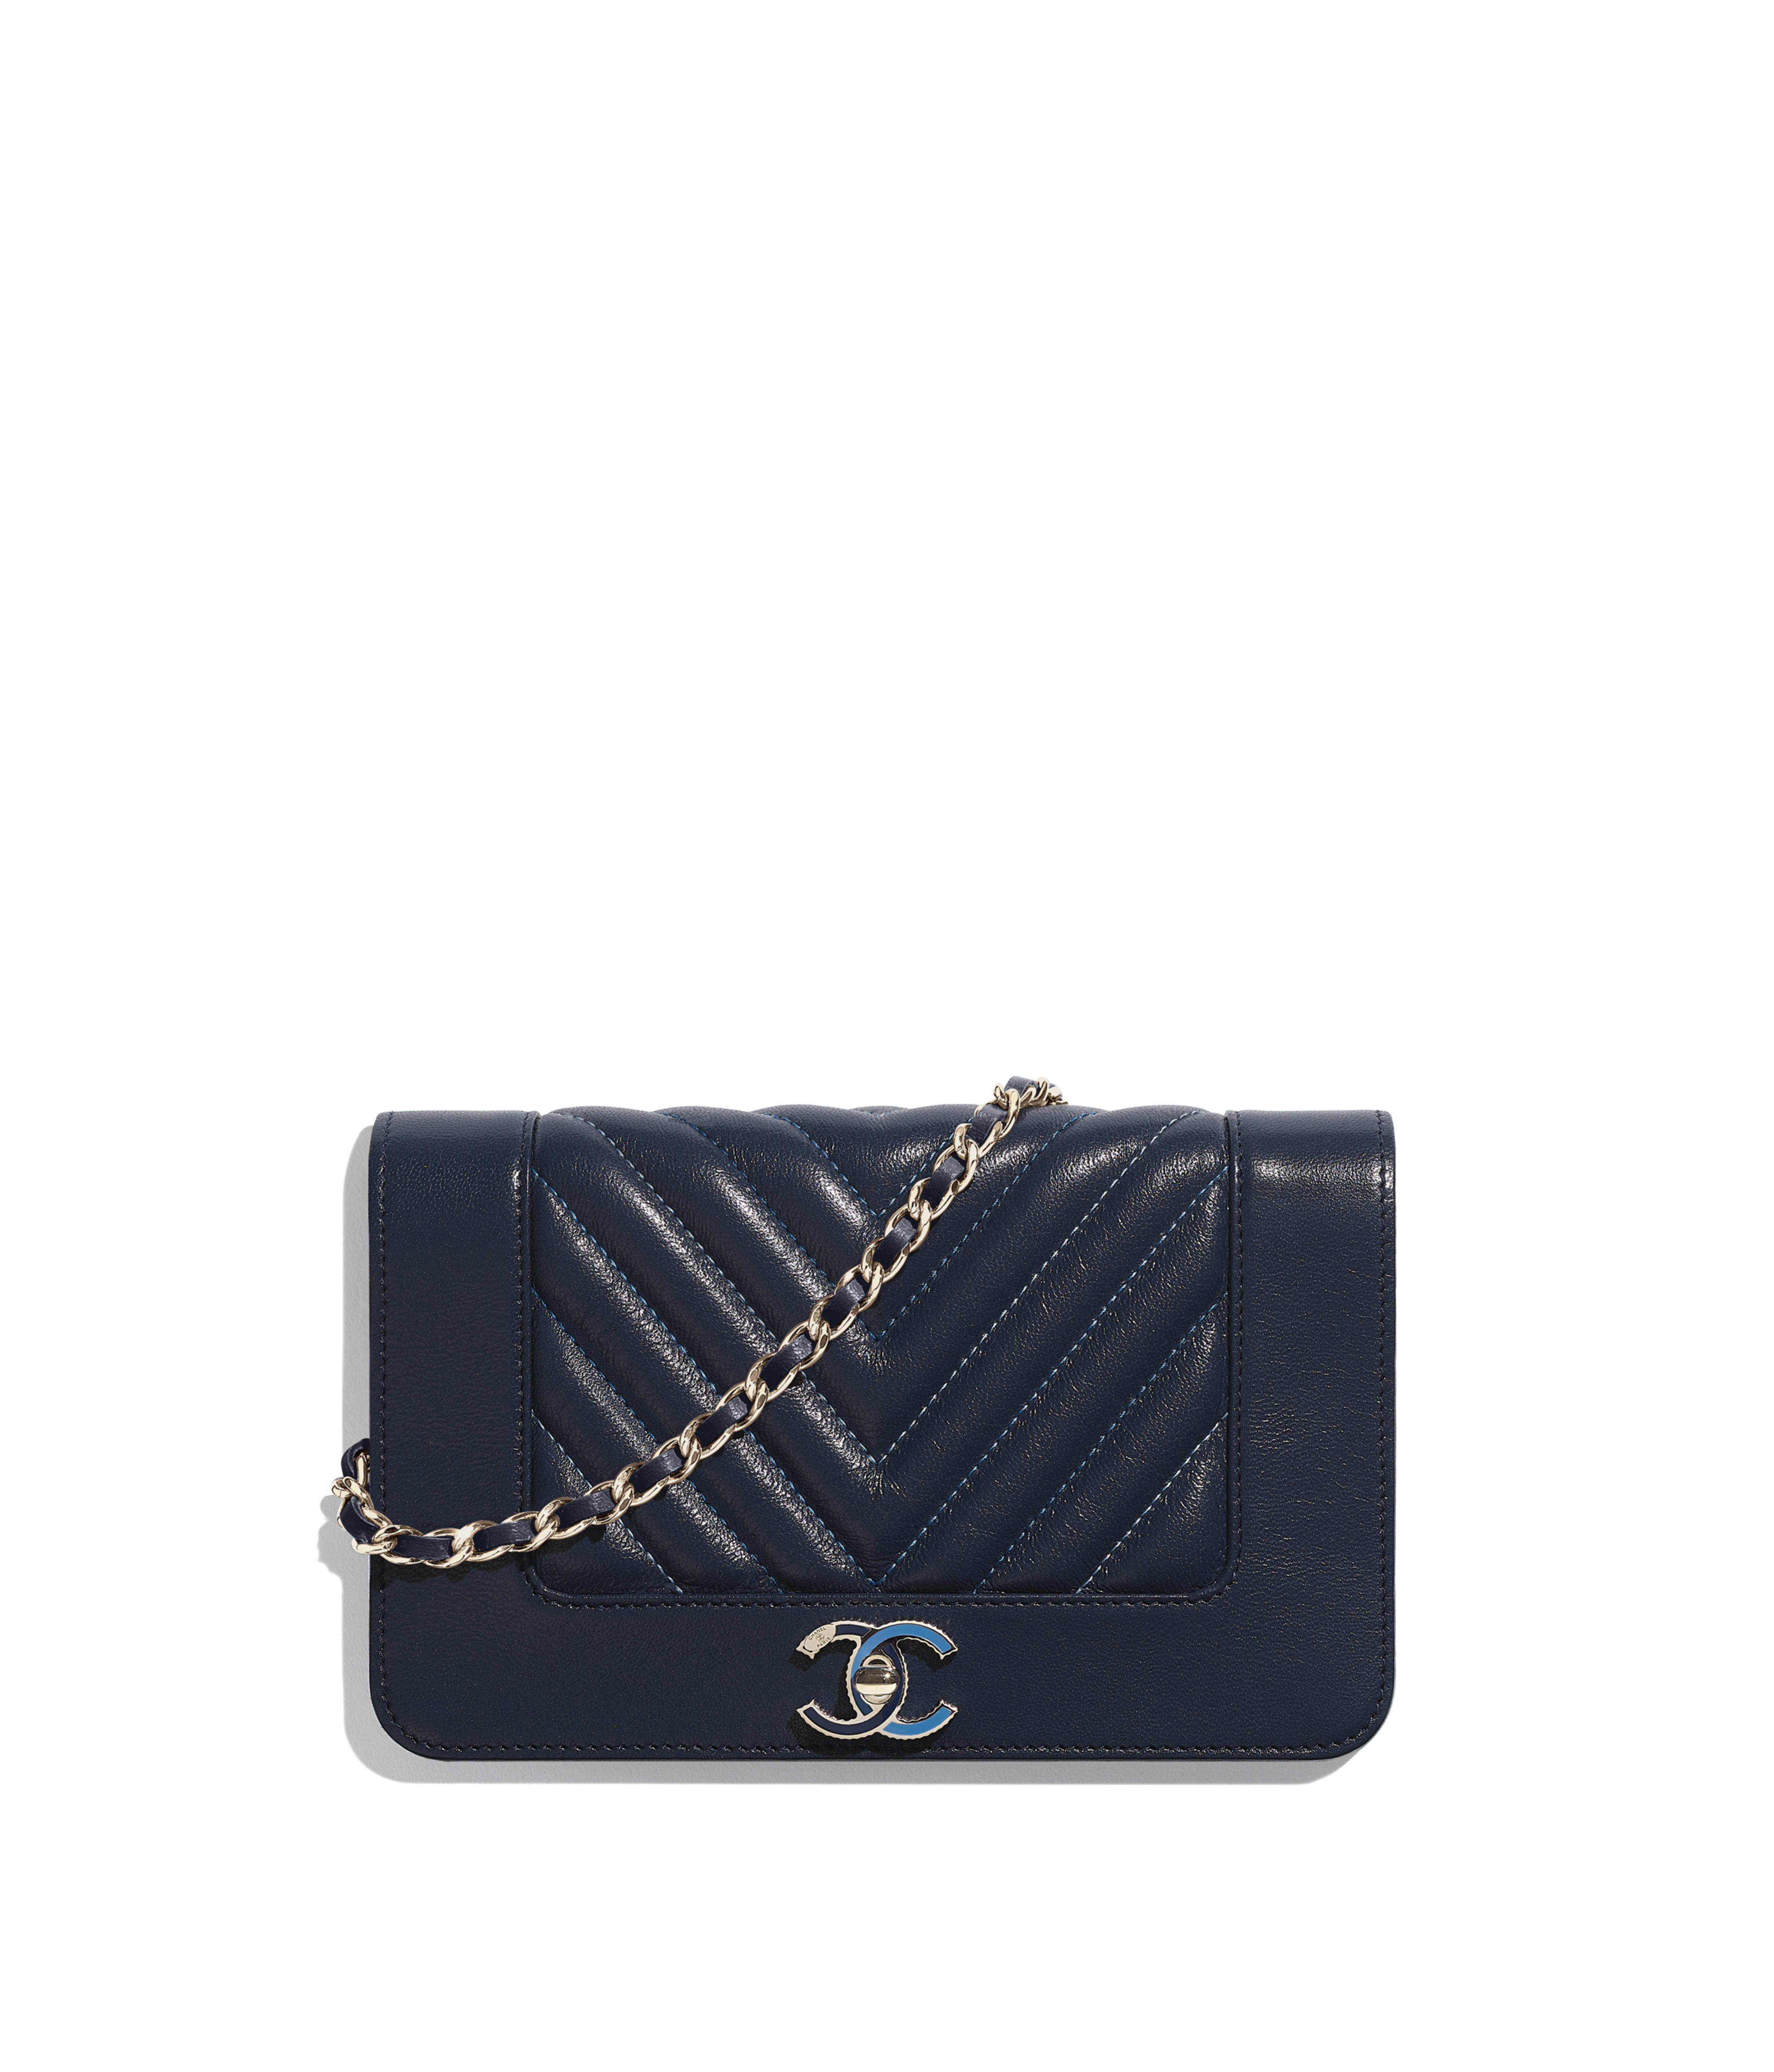 7a711c488d98 Wallet on Chain Sheepskin & Gold-Tone Metal, Navy Blue Ref.  A80972B00074N0417